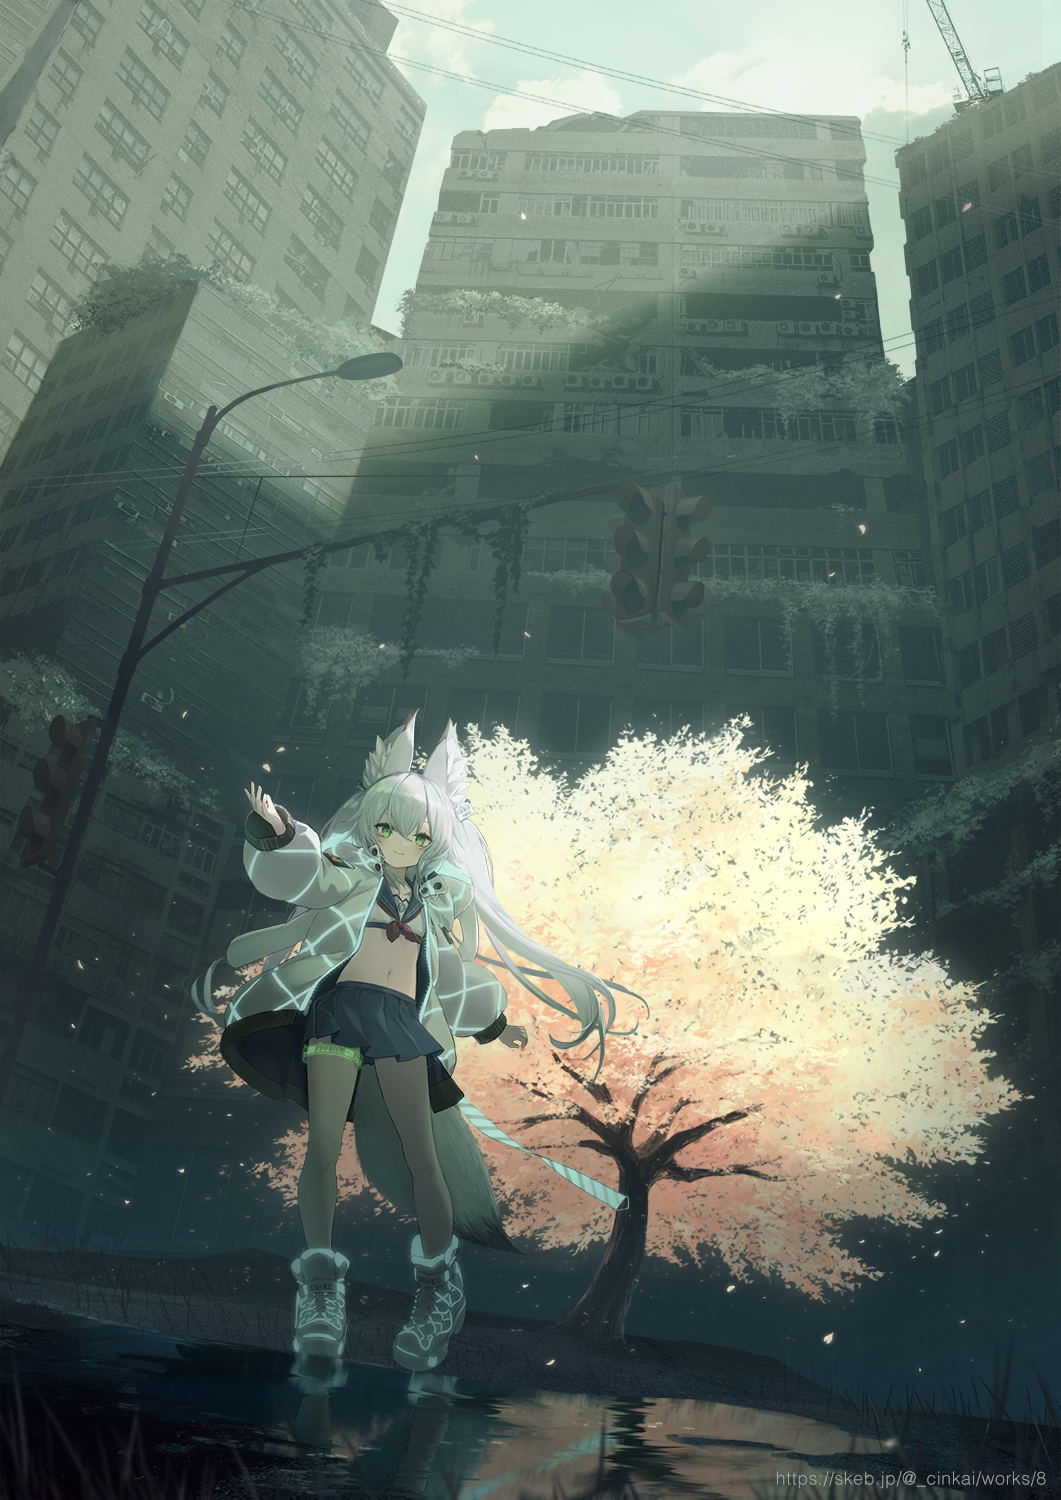 1girl animal_ears ankle_boots boots cherry_blossoms cinkai city clouds commission crane_(machine) crop_top dark fox_ears fox_tail from_below glowing green_eyes highres jacket lamppost long_hair midriff navel original outdoors overgrown pleated_skirt power_lines ruins scenery school_uniform serafuku silver_hair skeb_commission skirt sky solo sunlight tail thigh_strap traffic_light tree twintails water watermark